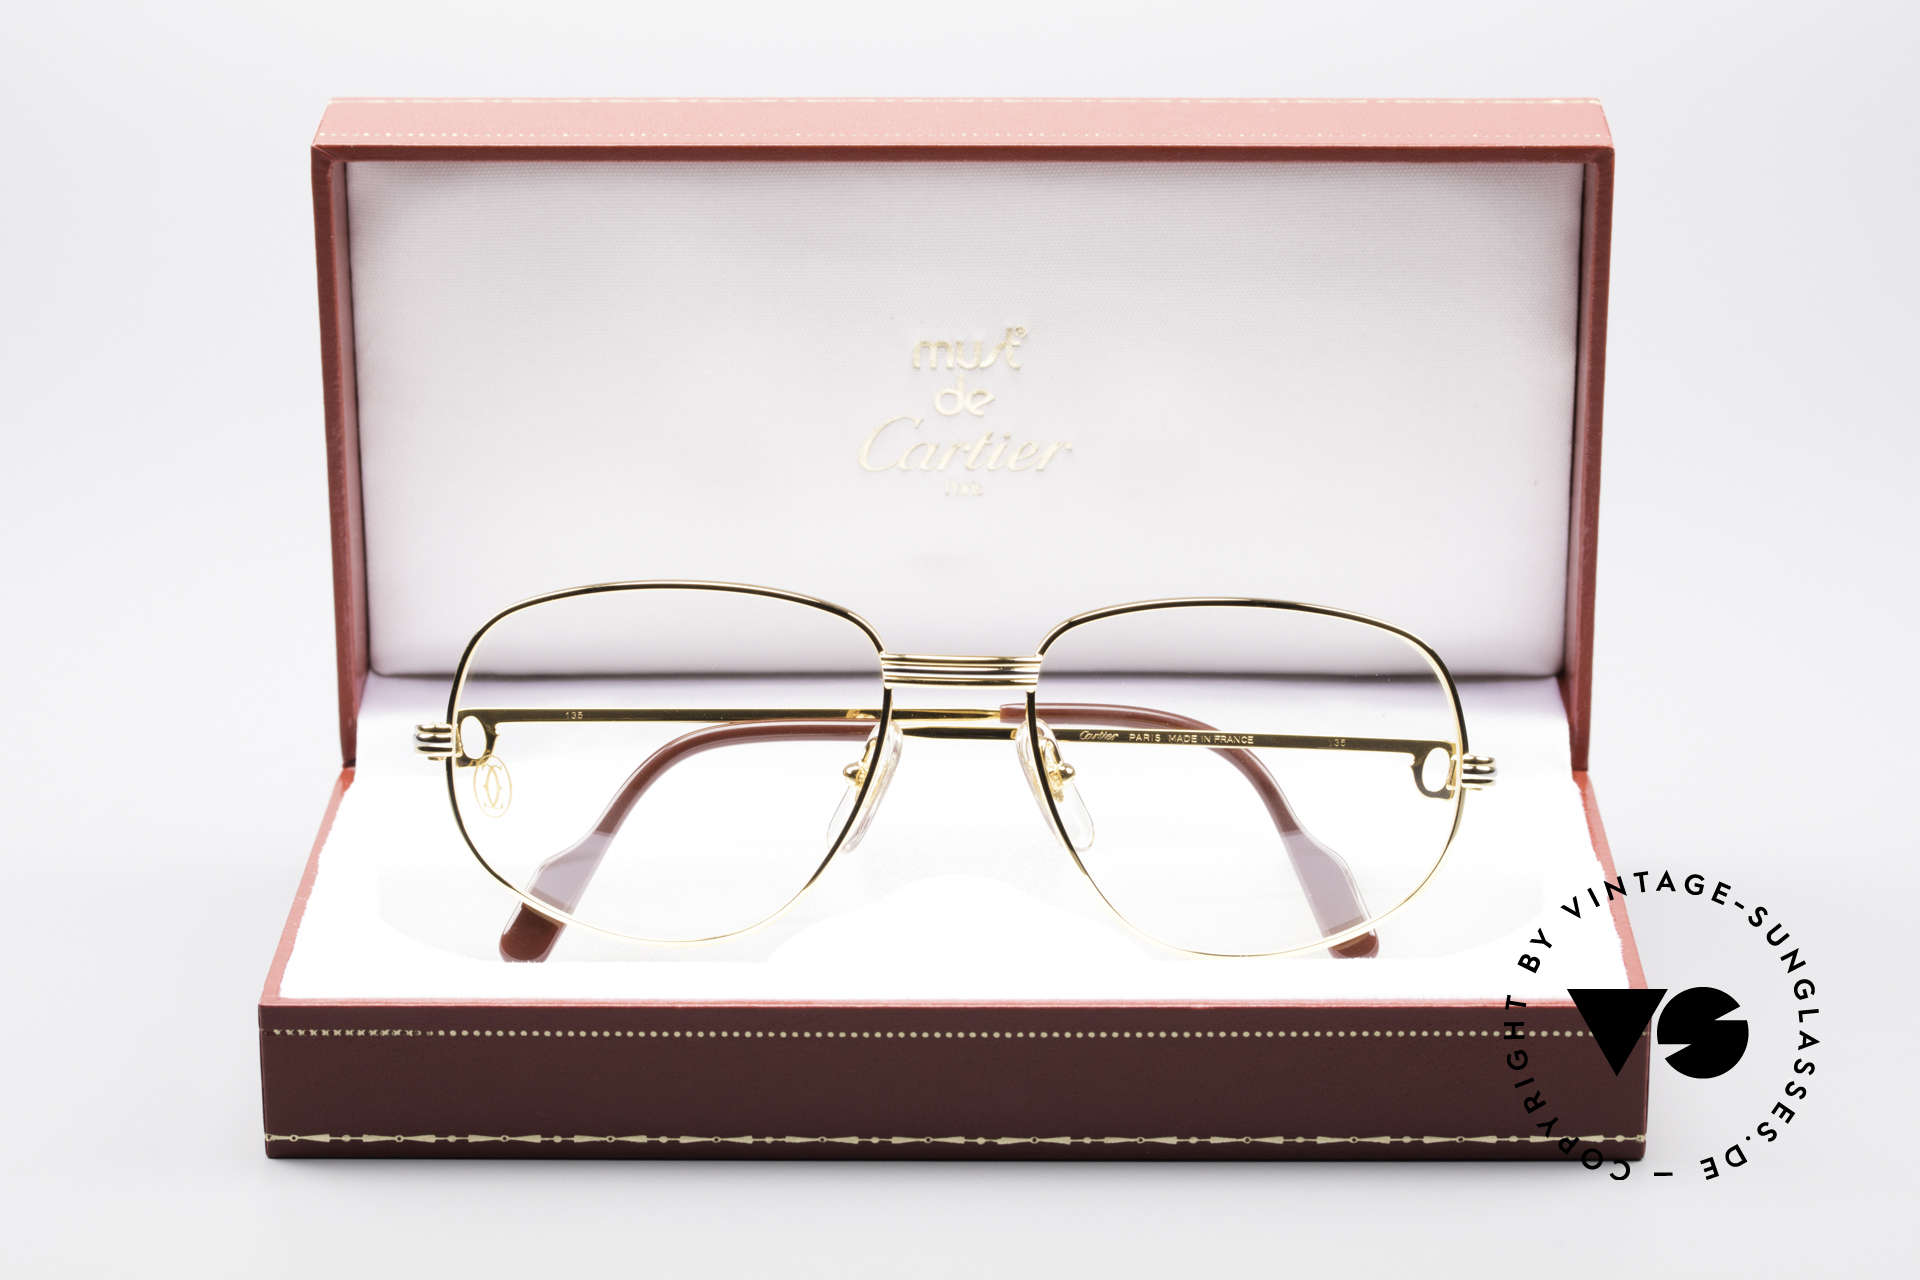 Cartier Romance LC - M Luxury Designer Glasses, unworn with original box (hard to find in this condition), Made for Men and Women